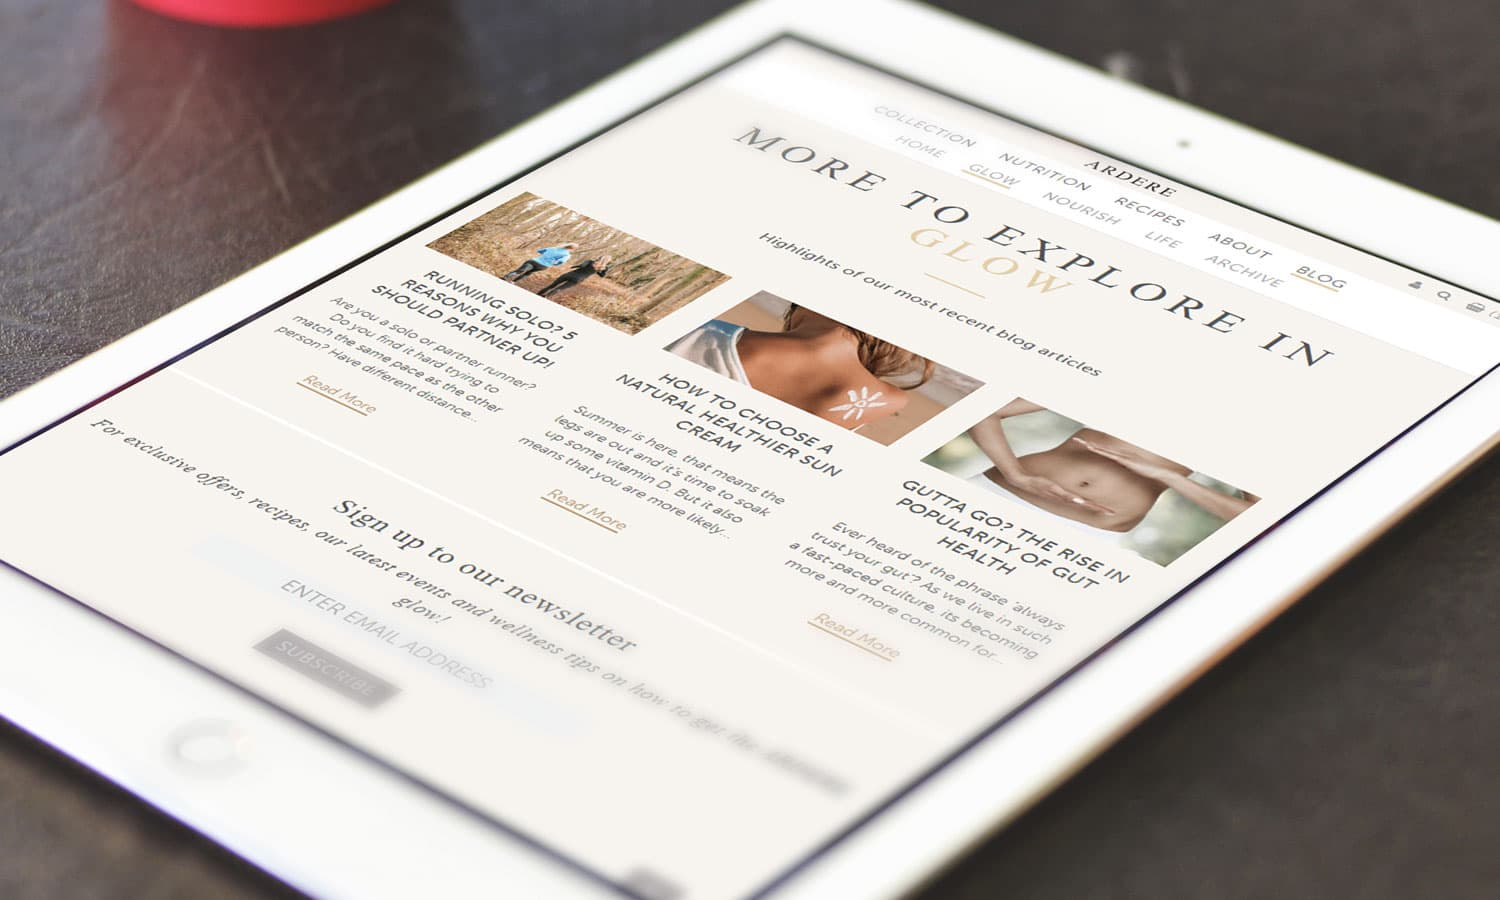 Ardere homepage-segment on tablet